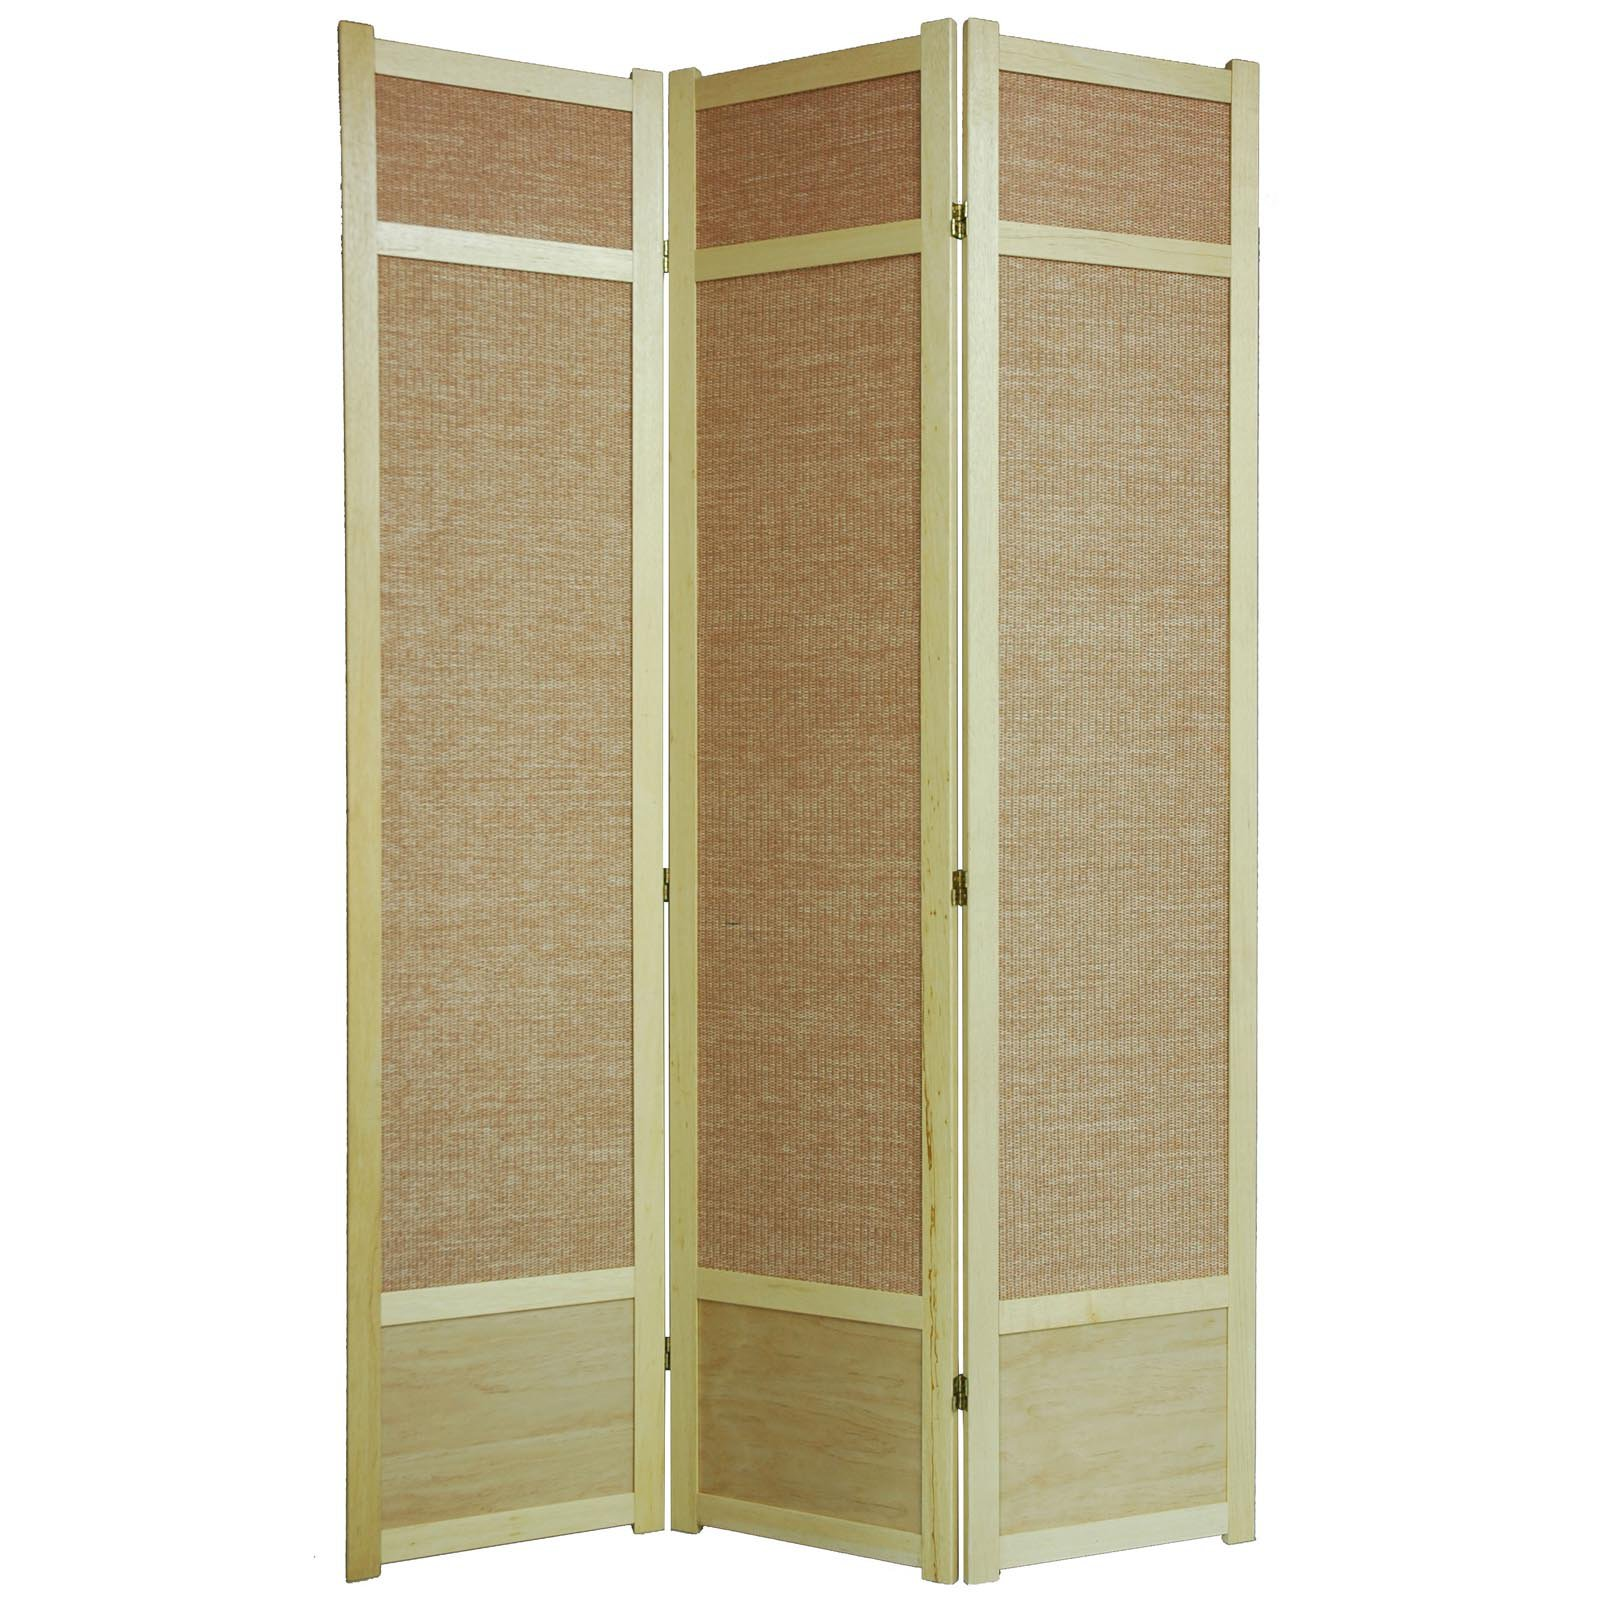 Oriental Furniture Jute Fiber Shoji Screen Room Divider-8...